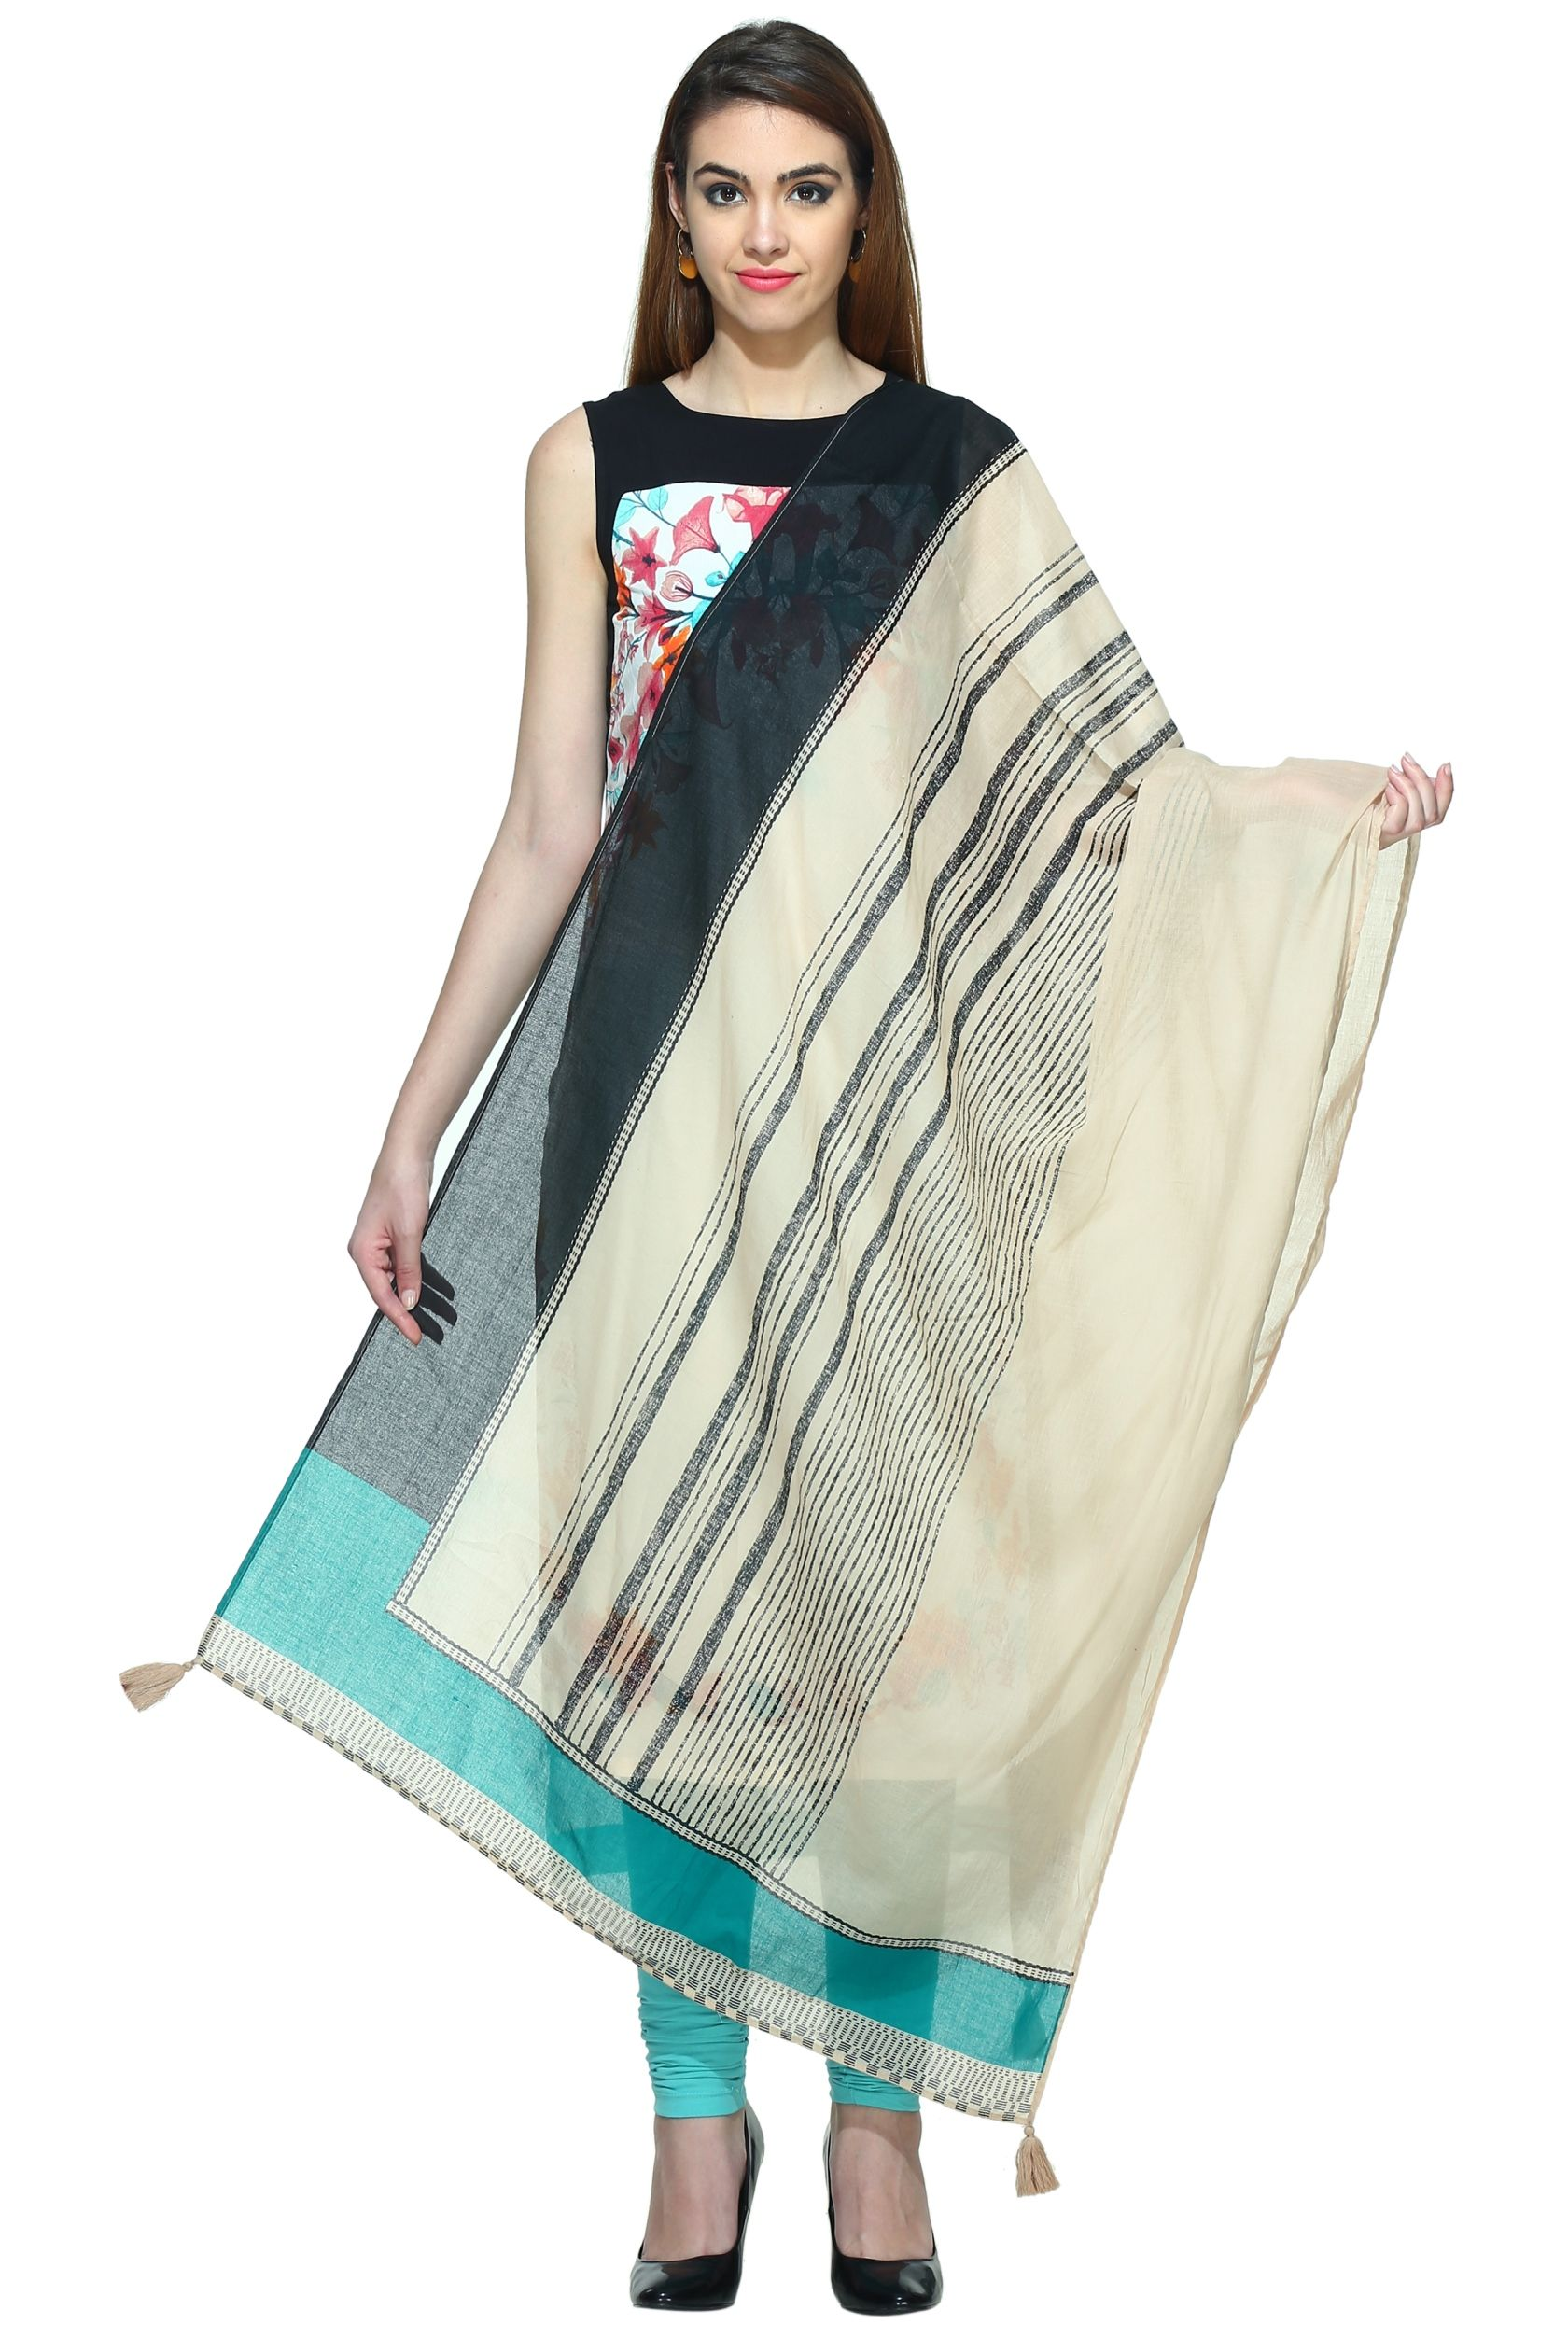 482b7072d44  Online  Shopping  India  Store Sells  W Smart Casual  Beige    Black   Dupatta like Pomp a traditional outlook with this brilliant ethnic  designed